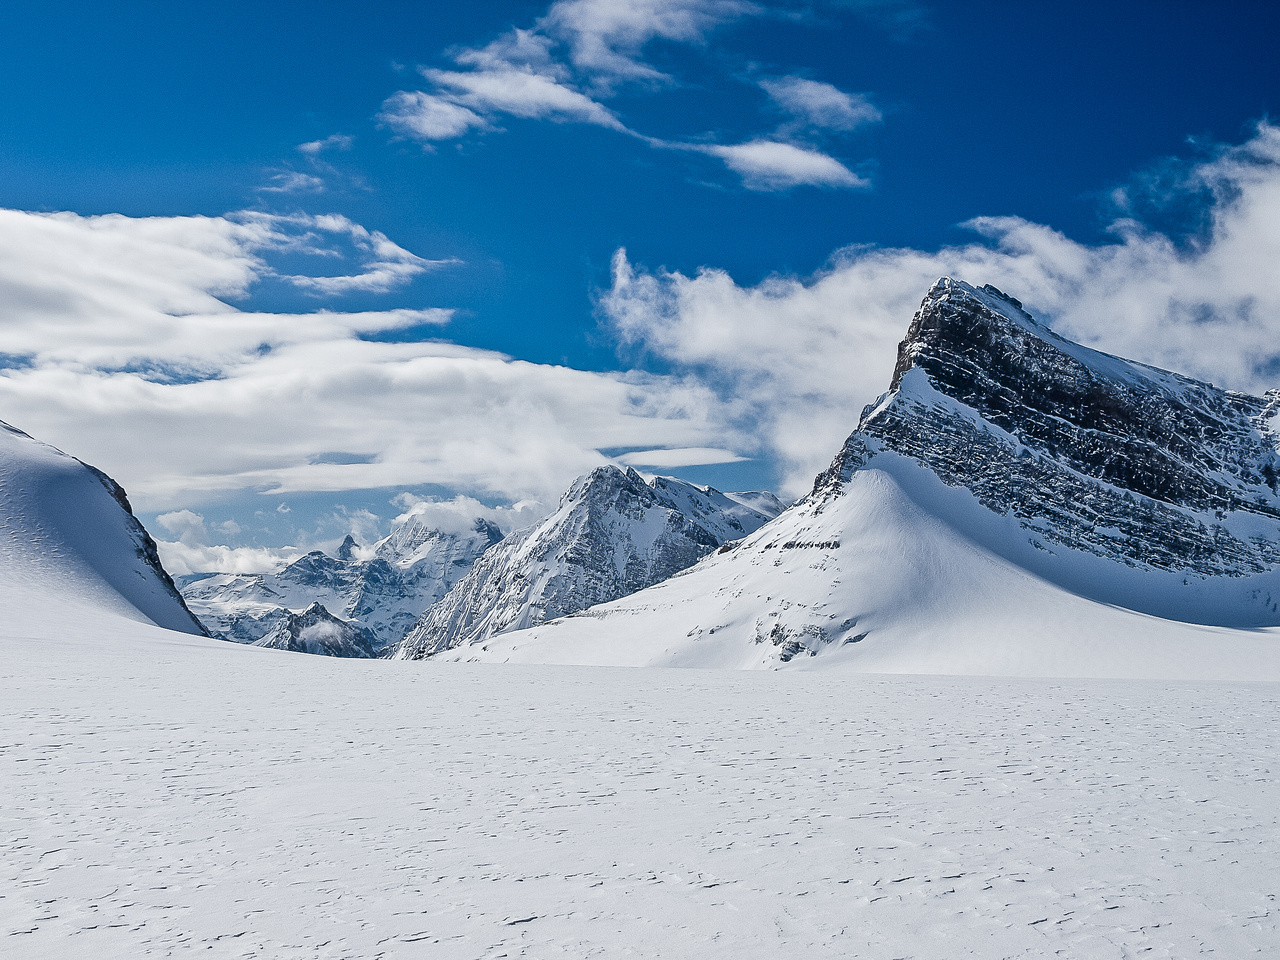 At the French / Robertson col with great views over the Haig Icefield.